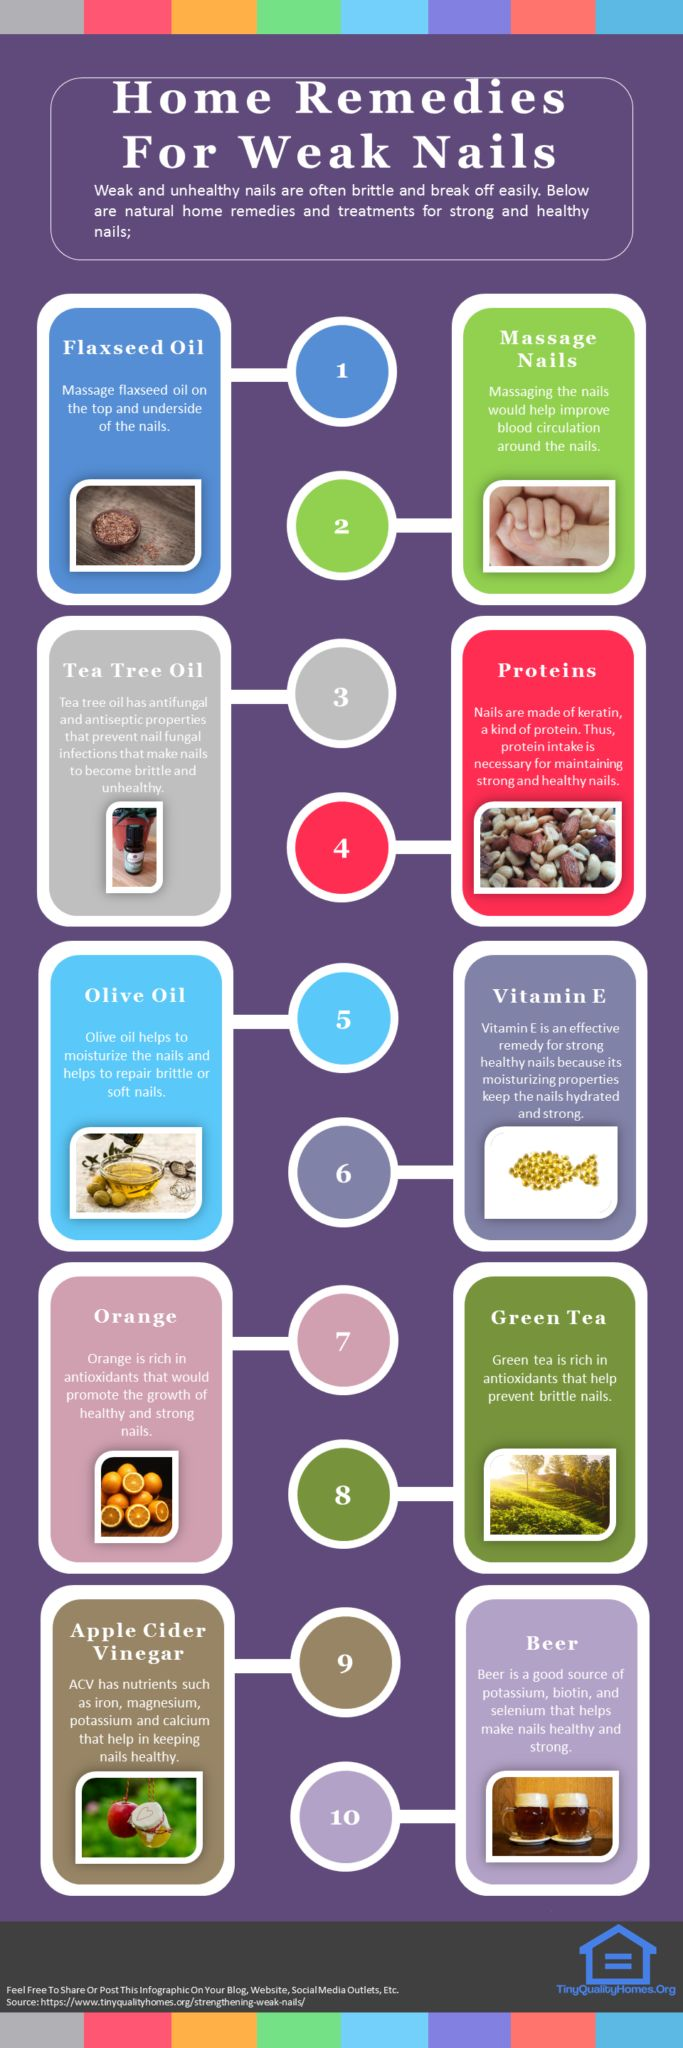 18 Natural Home Remedies And Treatments For Strengthening Weak Nails Infographic: This Article Discusses Ideas On The Following; How To Strengthen Nails Home Remedy, Best Nail Polish To Strengthen Nails, Strengthen Nails Vitamin Treatment, How To Strengthen Nails And Make Them Grow, How To Harden Nails Instantly, How To Make Nails Stronger And Thicker, How To Strengthen Nails After Acrylics, Diy Nail Strengthener, Weak Nail Causes, How To Fix Weak Nails, Etc.